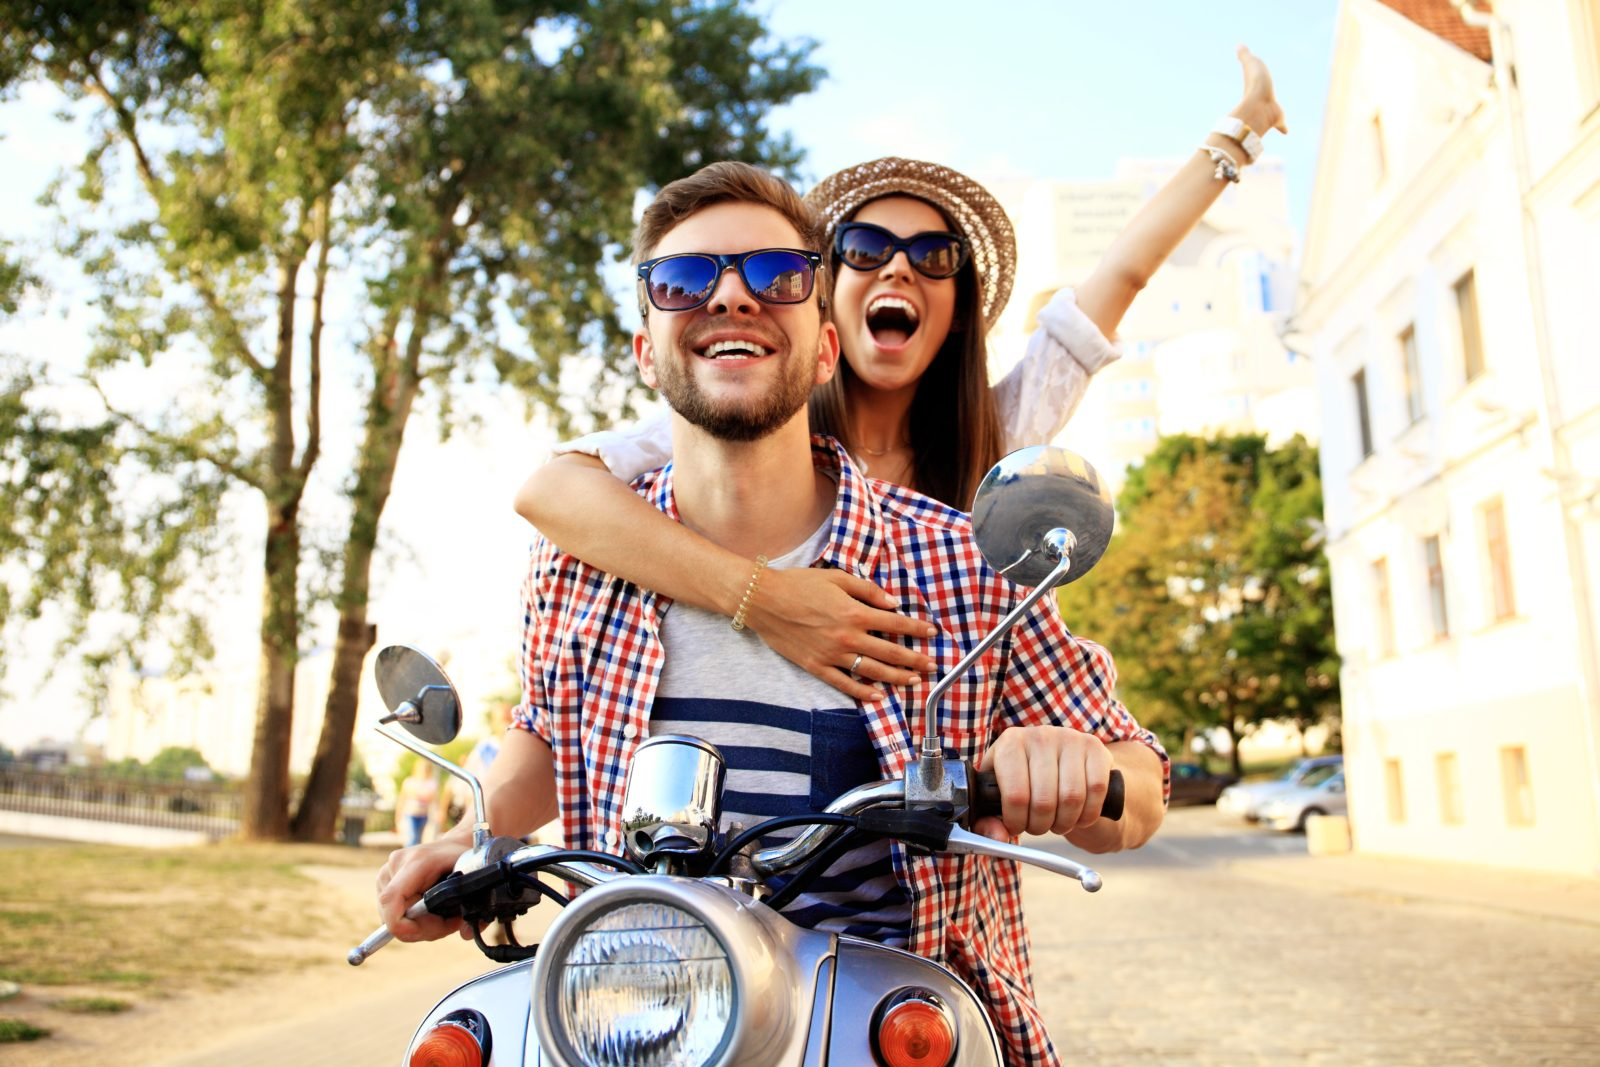 Young Happy Couple on a Motorcycle